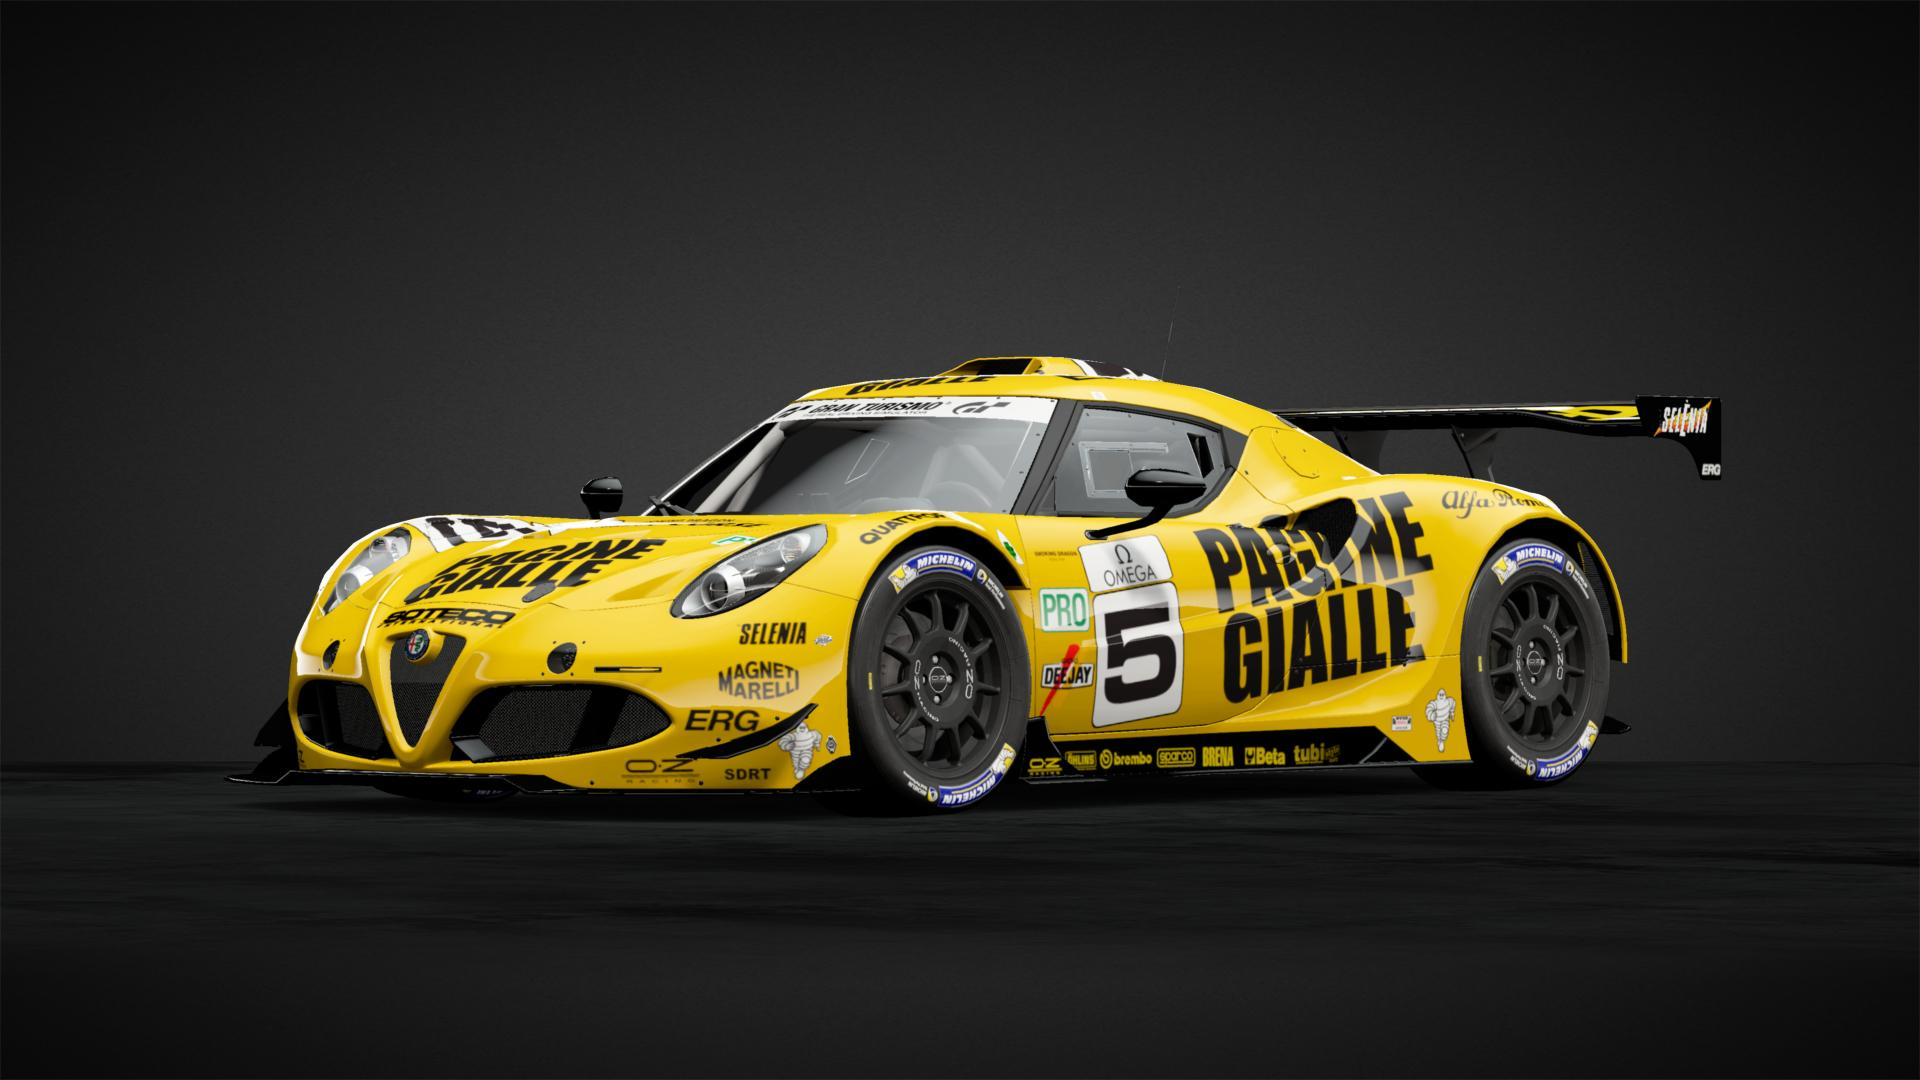 reputable site dacf2 e5c33 Alfa Pagine Gialle - Car Livery by Oo_StigRosso_oO ...